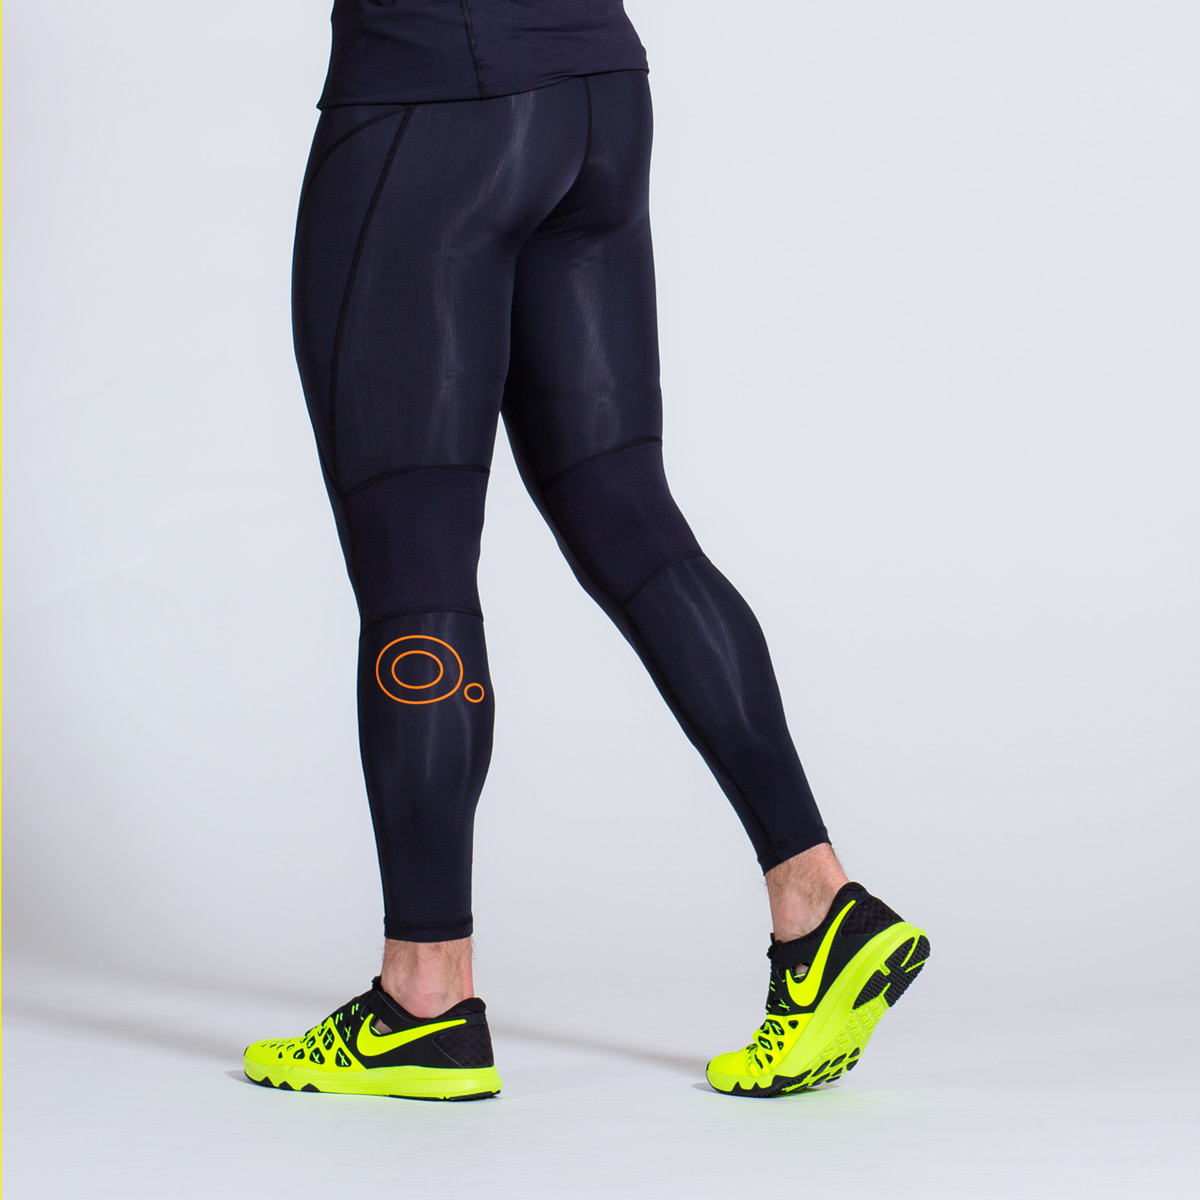 Athletic Compression Tights Zeropoint